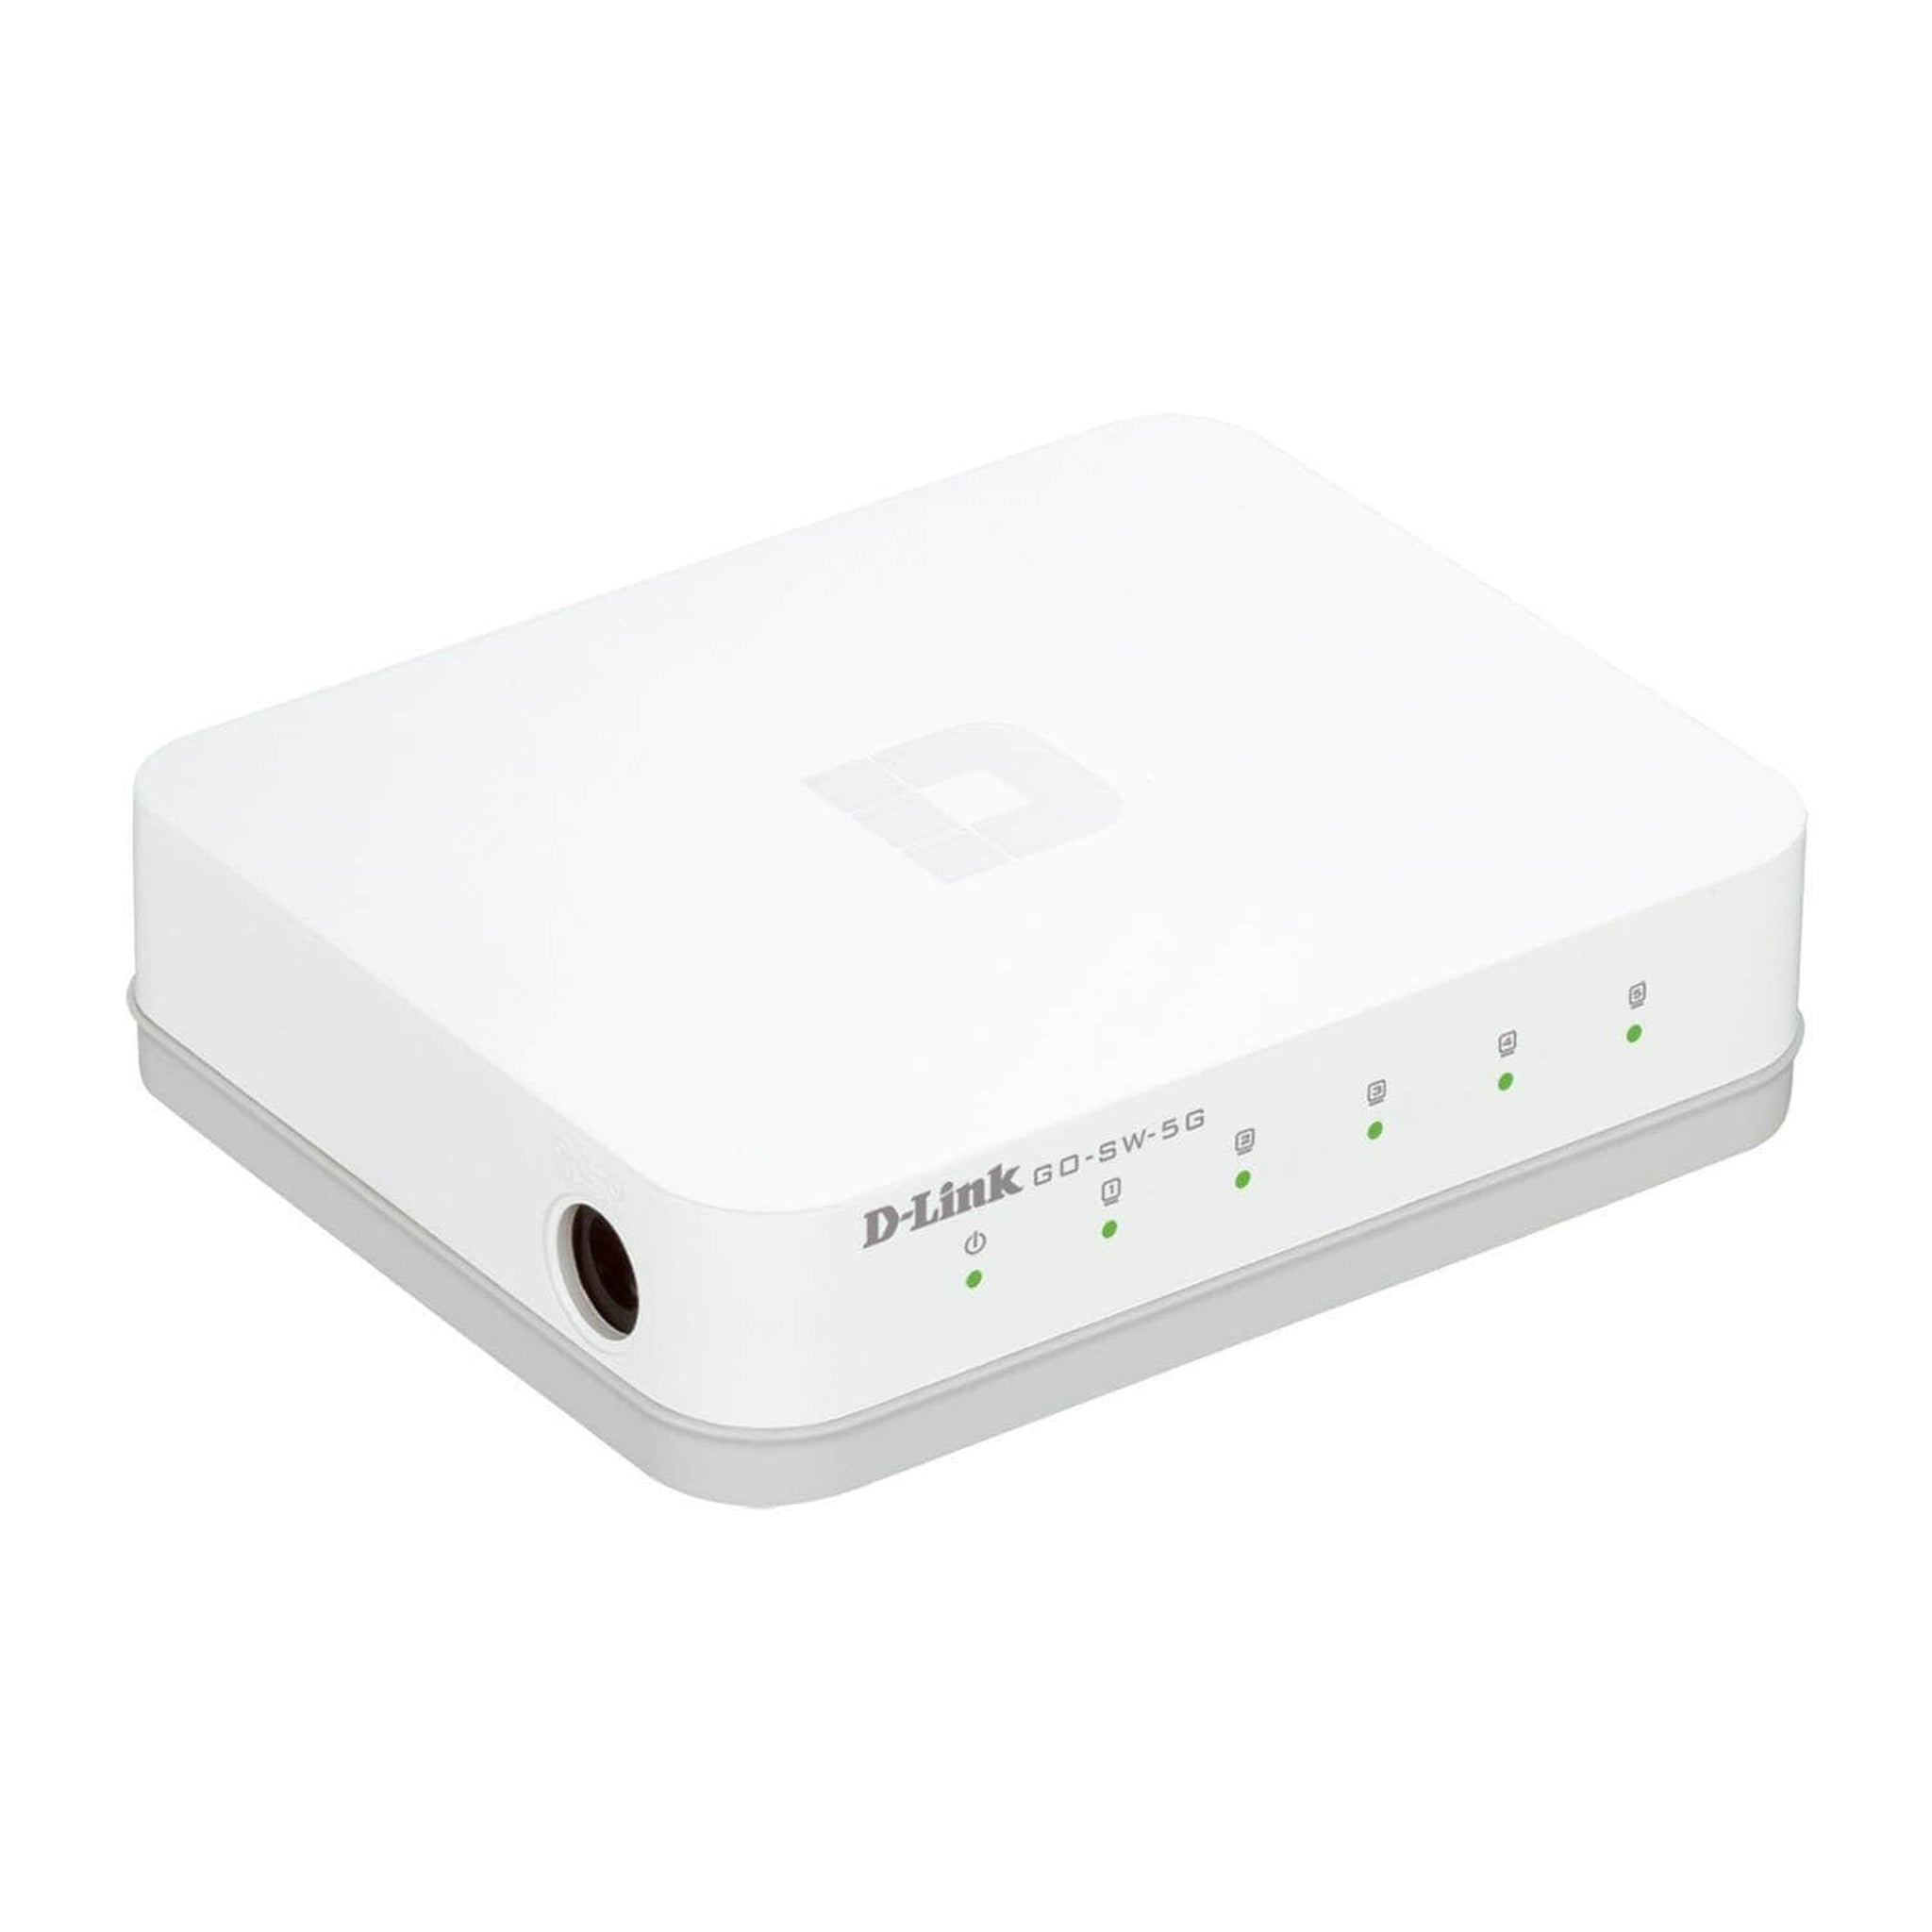 D-Link Network GO-SW-5G 5Port Unmanaged Gigabit Desktop Switch - Choice Computer Technologies